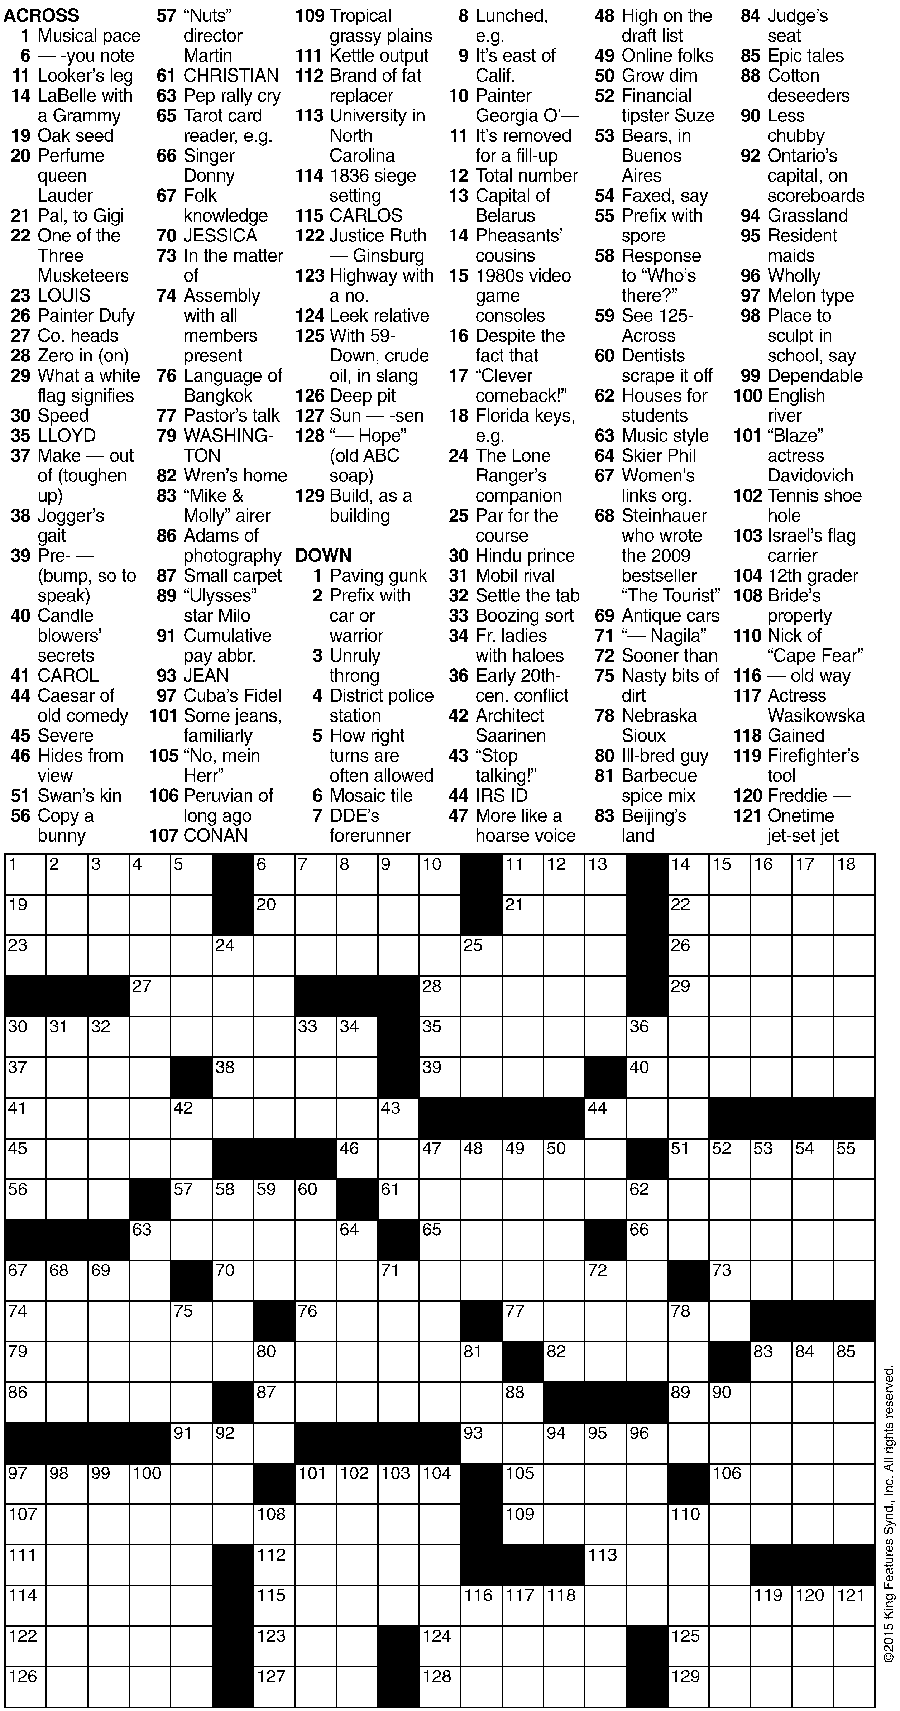 crossword_puzzle041415.png